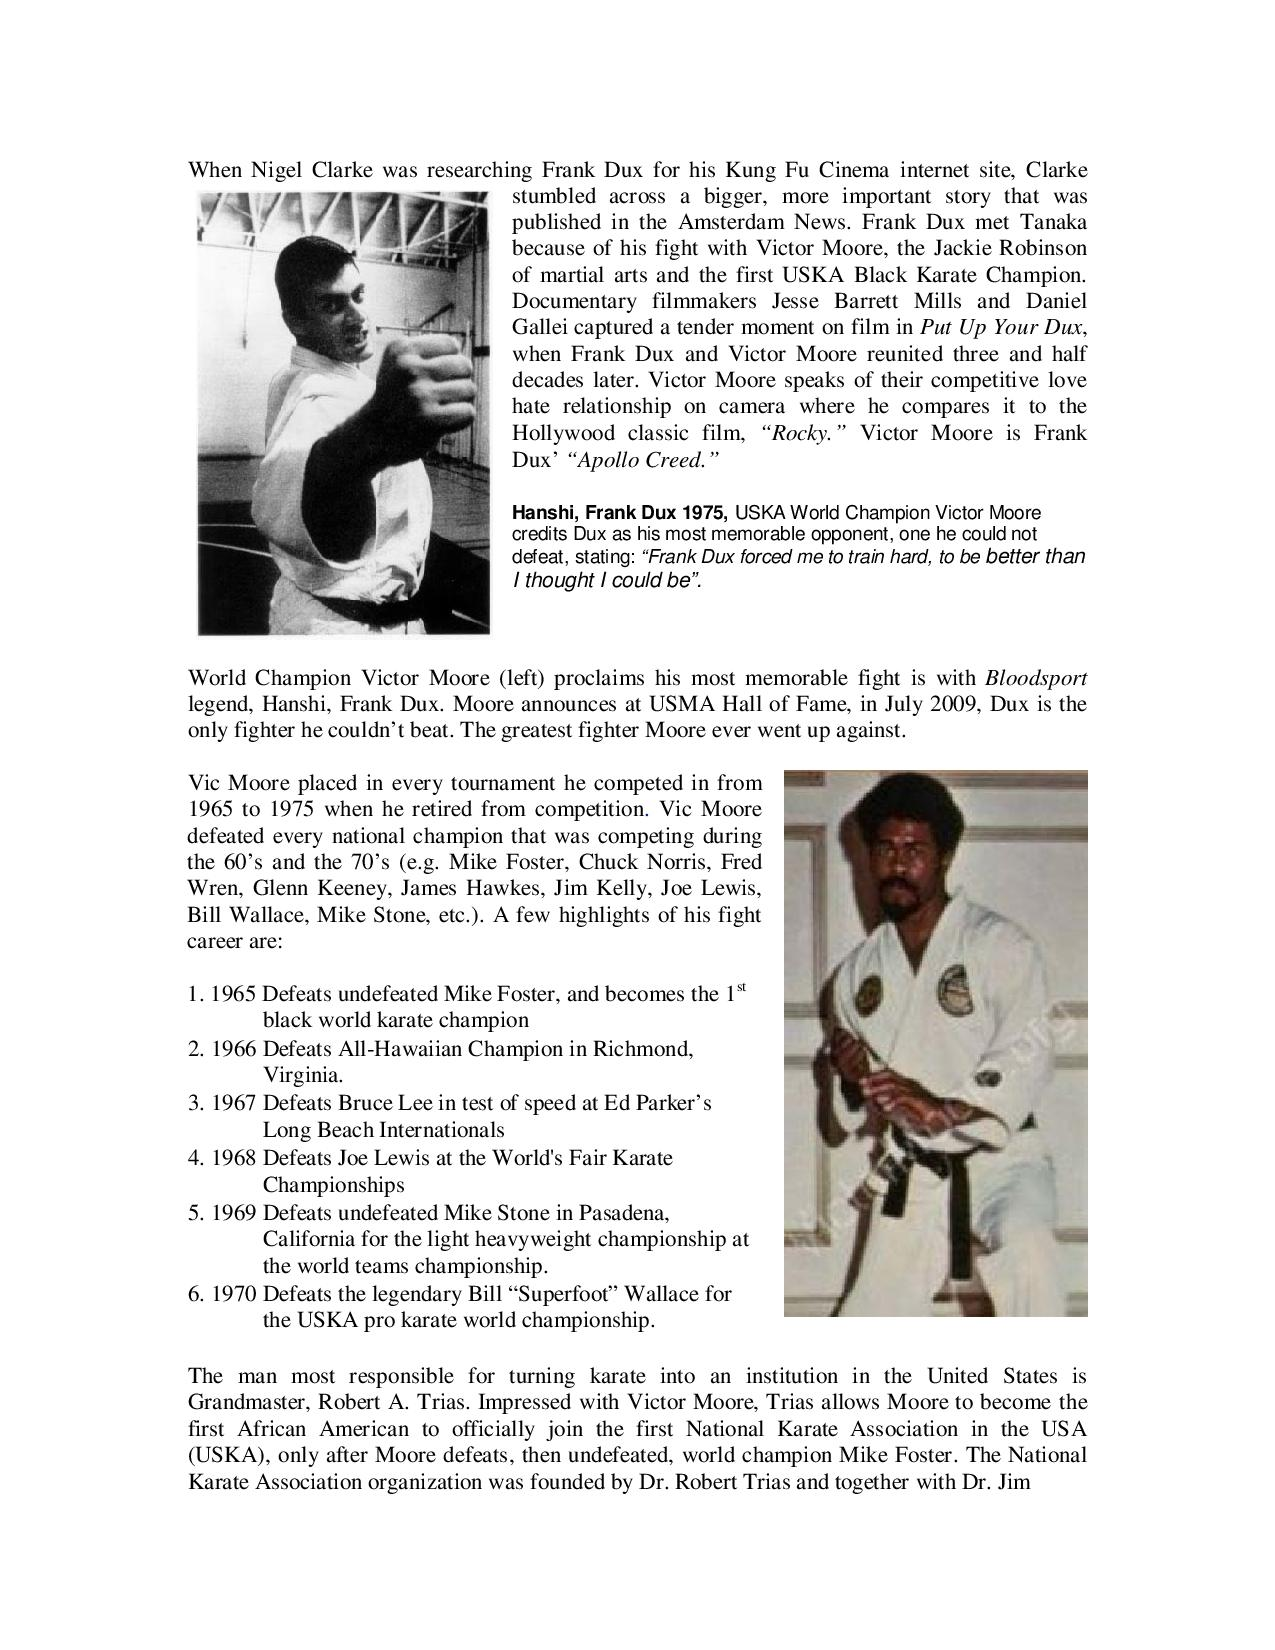 frank-dux-the-warrior-secure-page-007